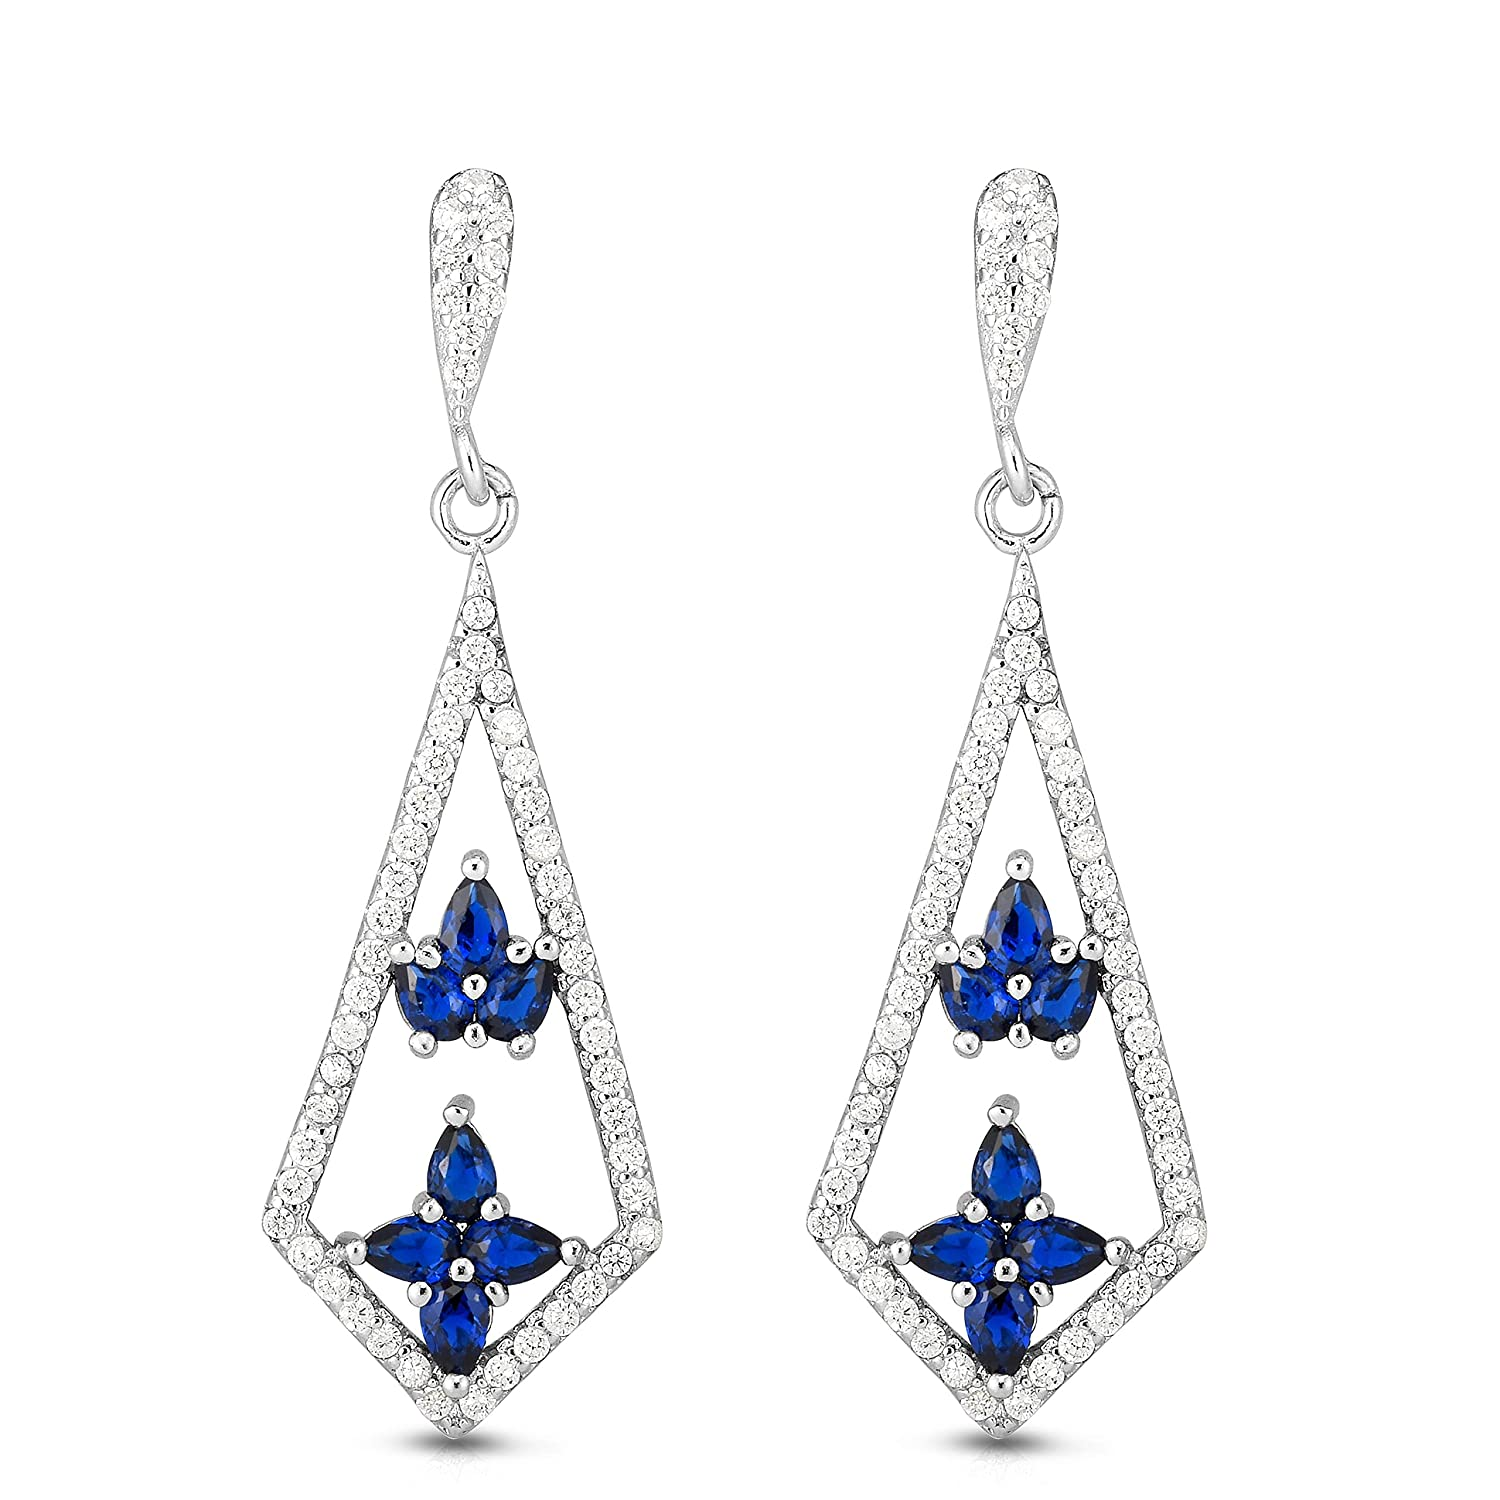 Unique Royal Jewelry 925 Solid Sterling Silver Cubic Zirconia and Simulated Colorful Stones Kite Shape Designer Dangling Drop Post Earrings.